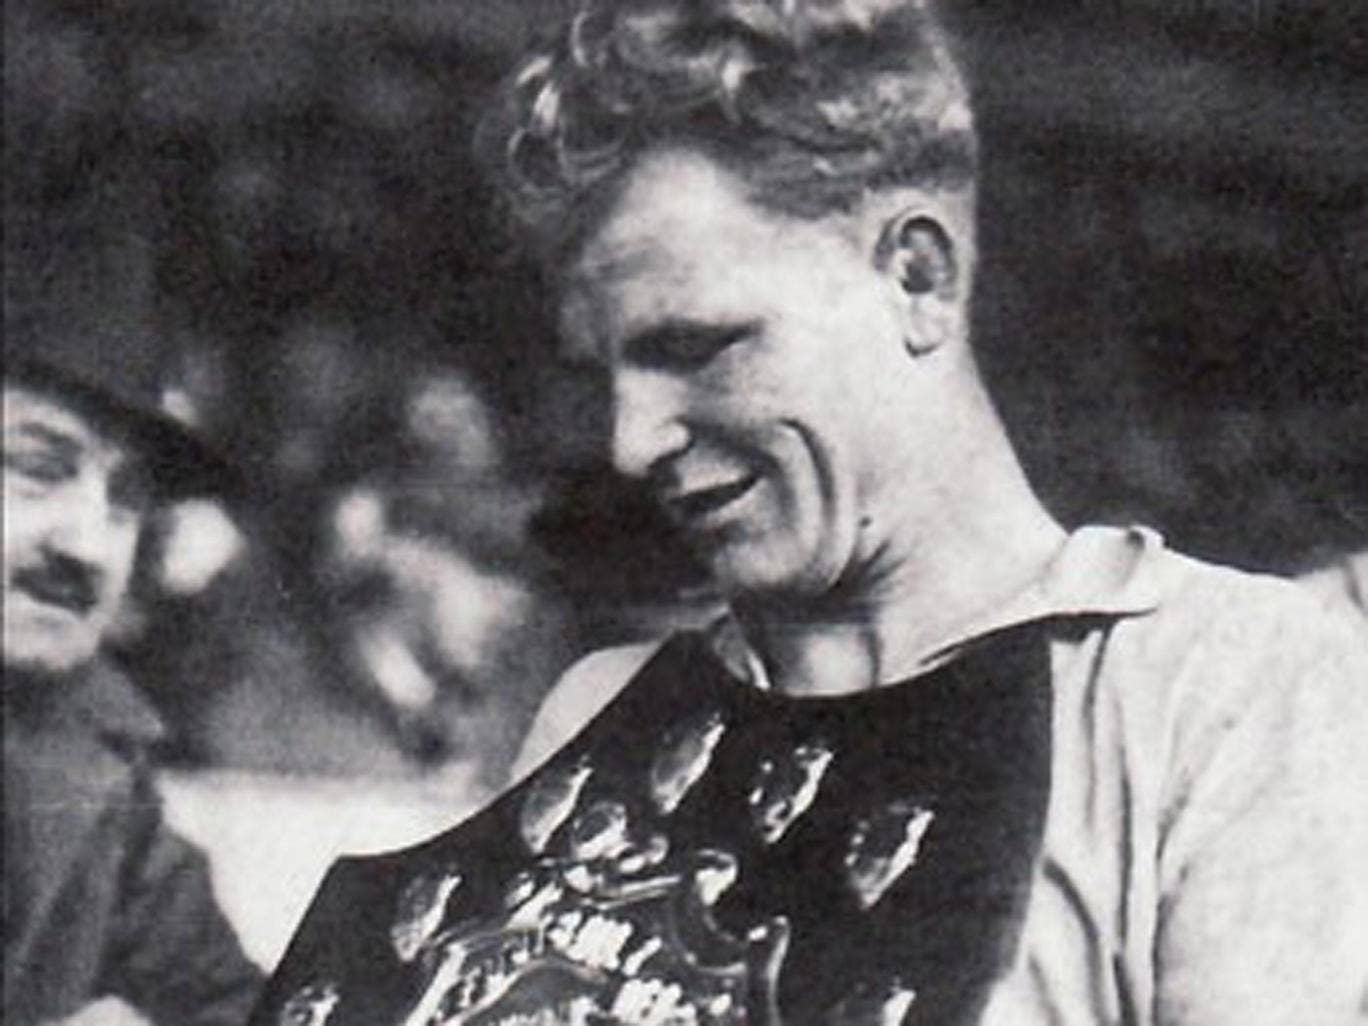 Fred Stansfield takes the trophy for Cardiff City's Third Division (South) title in 1947